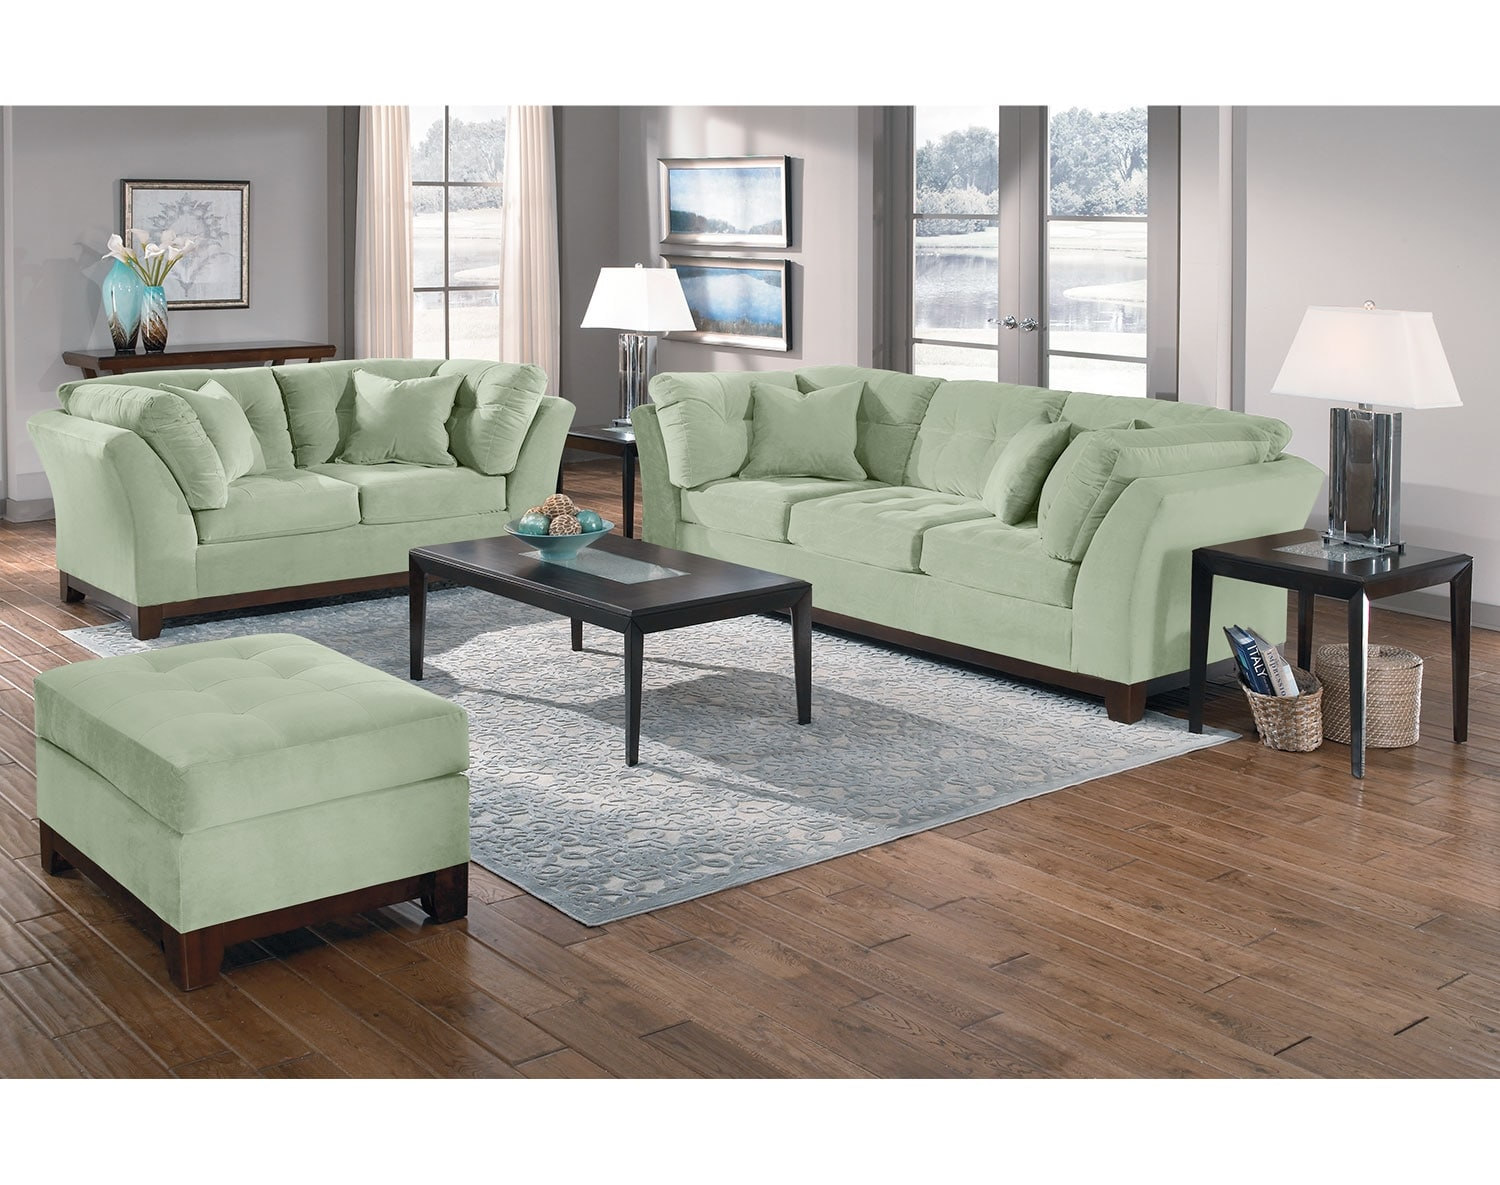 The Sebring Living Room Collection - Spa